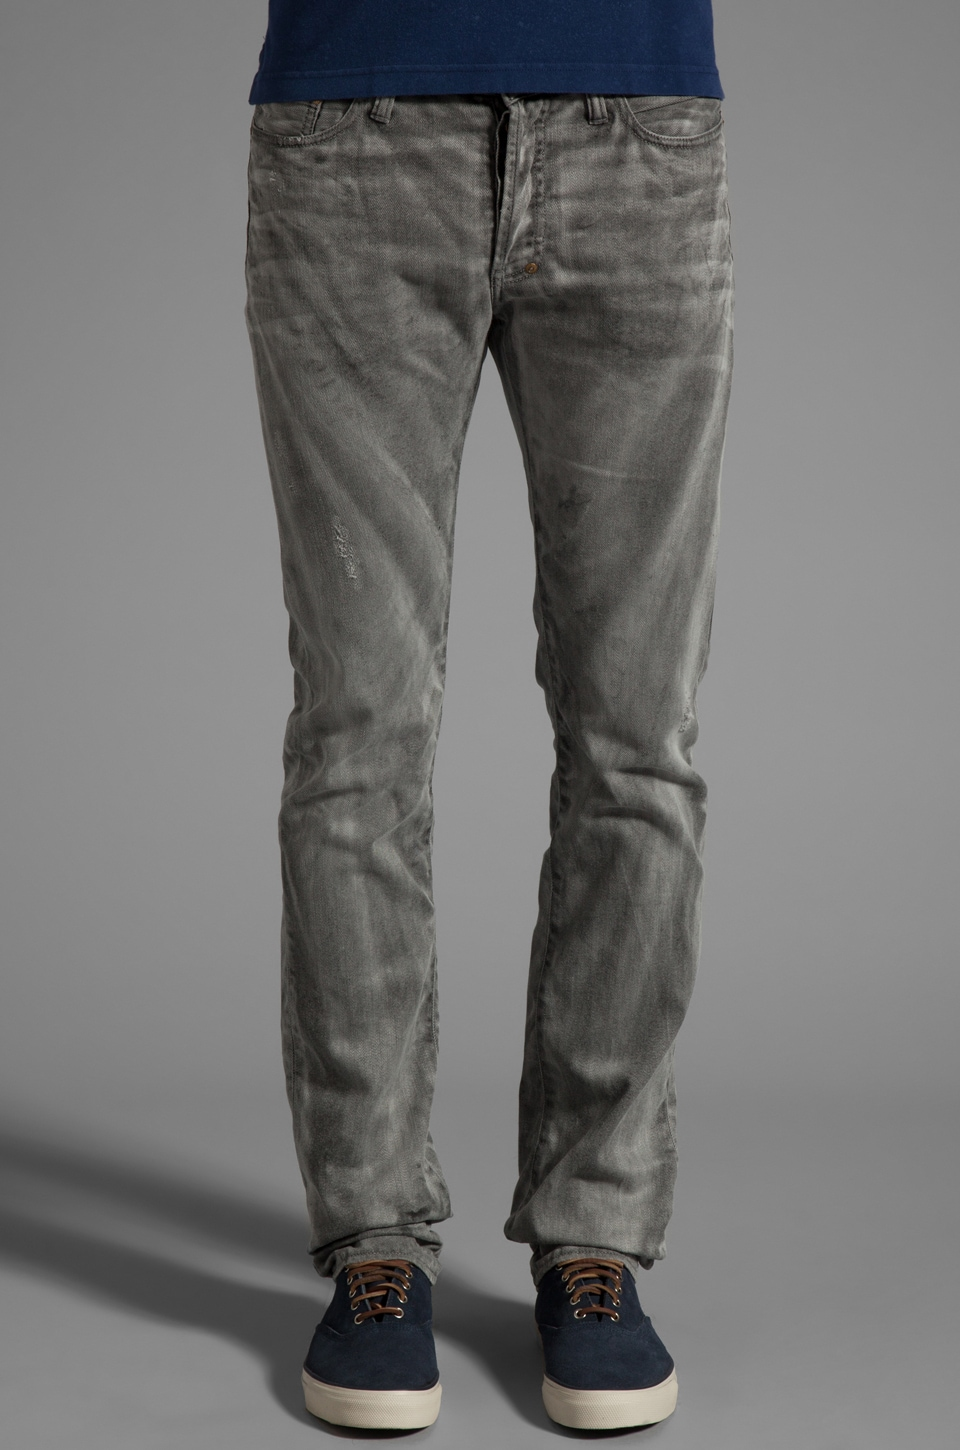 PRPS Goods & Co. Grey Wash Jean in Grey